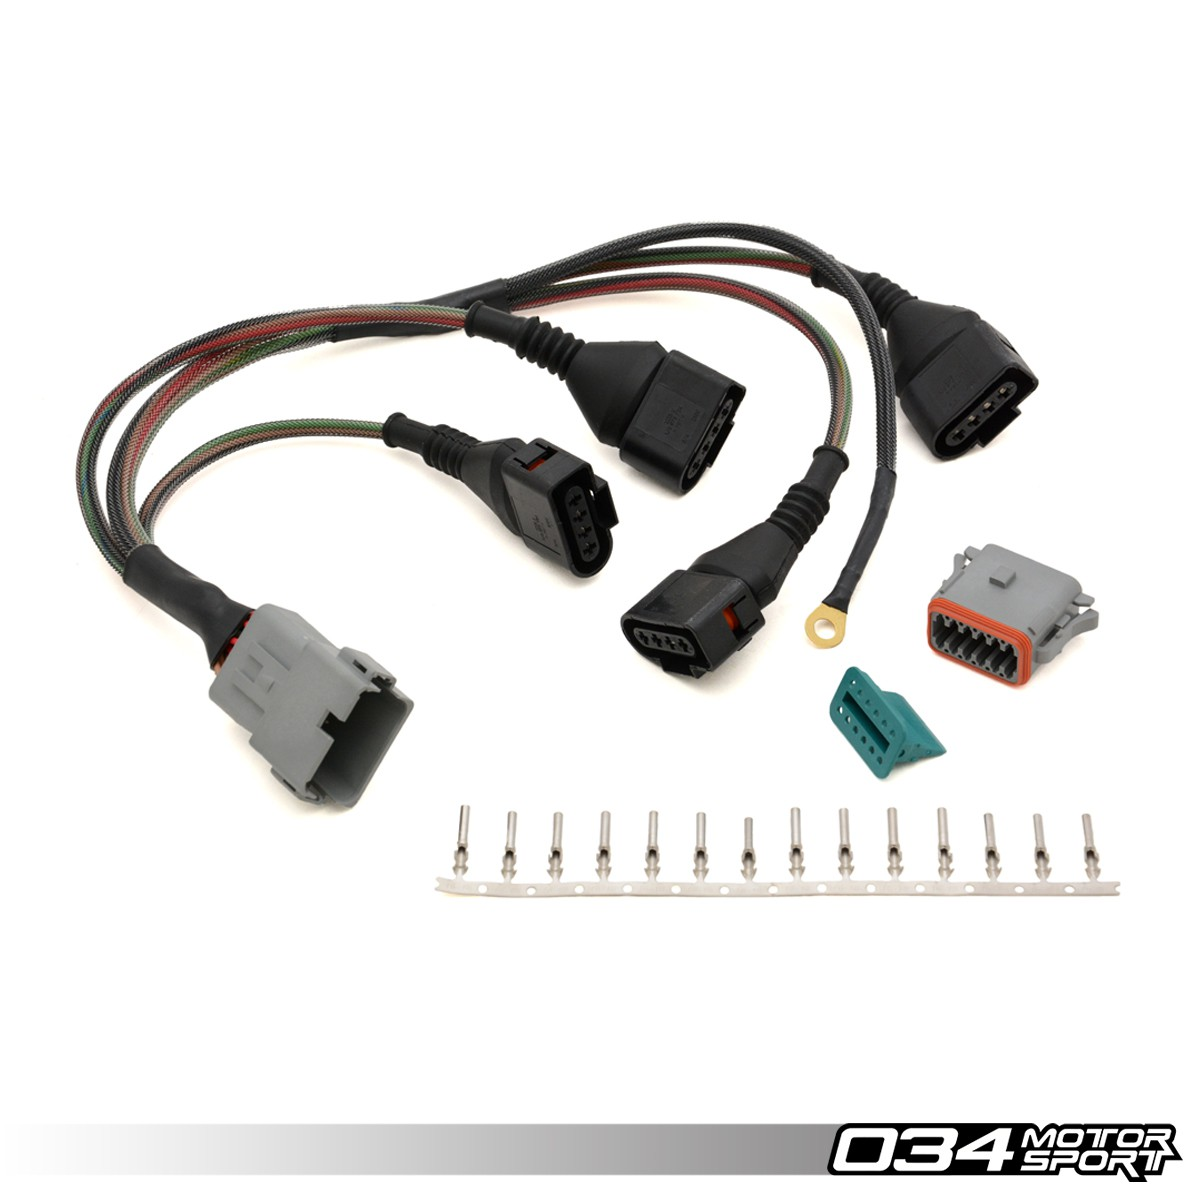 repair update harness audi volkswagen 18t with 4 wire coils 034motorsport 034 701 0004 2 repair update harness, audi volkswagen 1 8t with 4 wire coils electrical wiring harness connectors at n-0.co